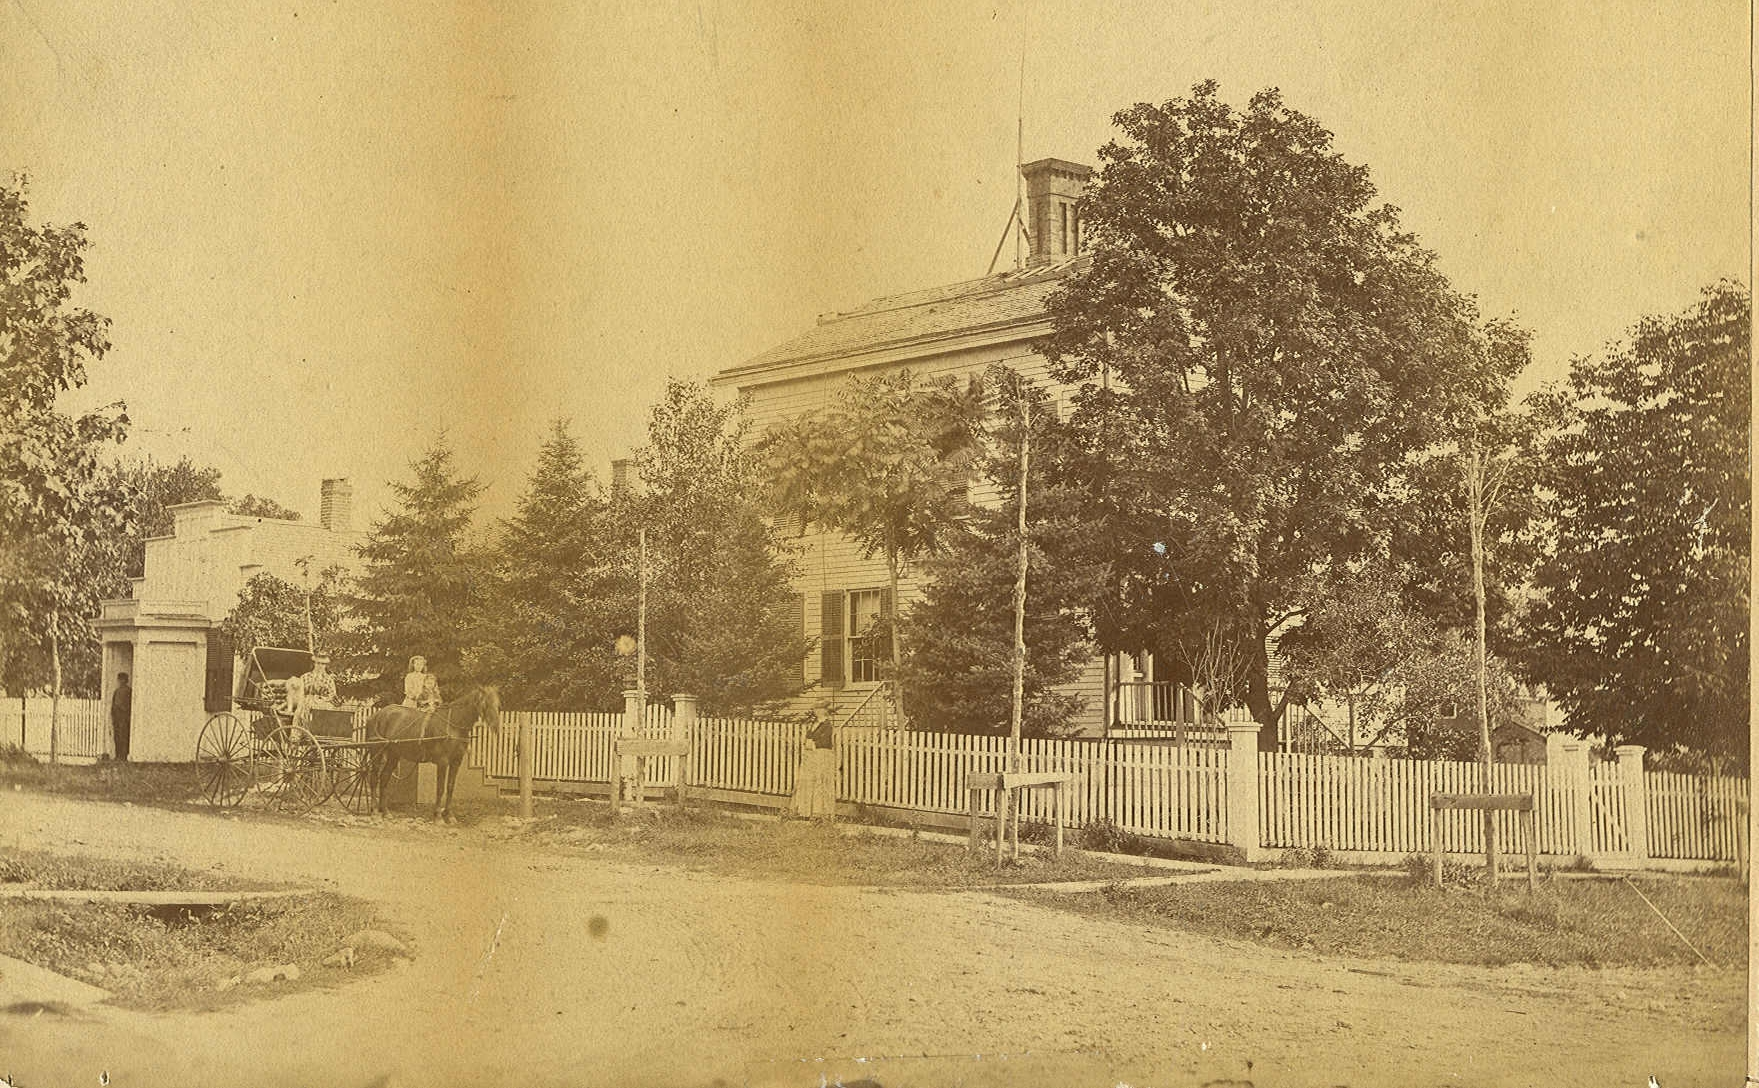 Steven Sandborn Jones and his wife, Lavinia Camp Jones, moved from Vermont to St. Charles in 1838 and built this house in around 1843. 504 E. Main Street.